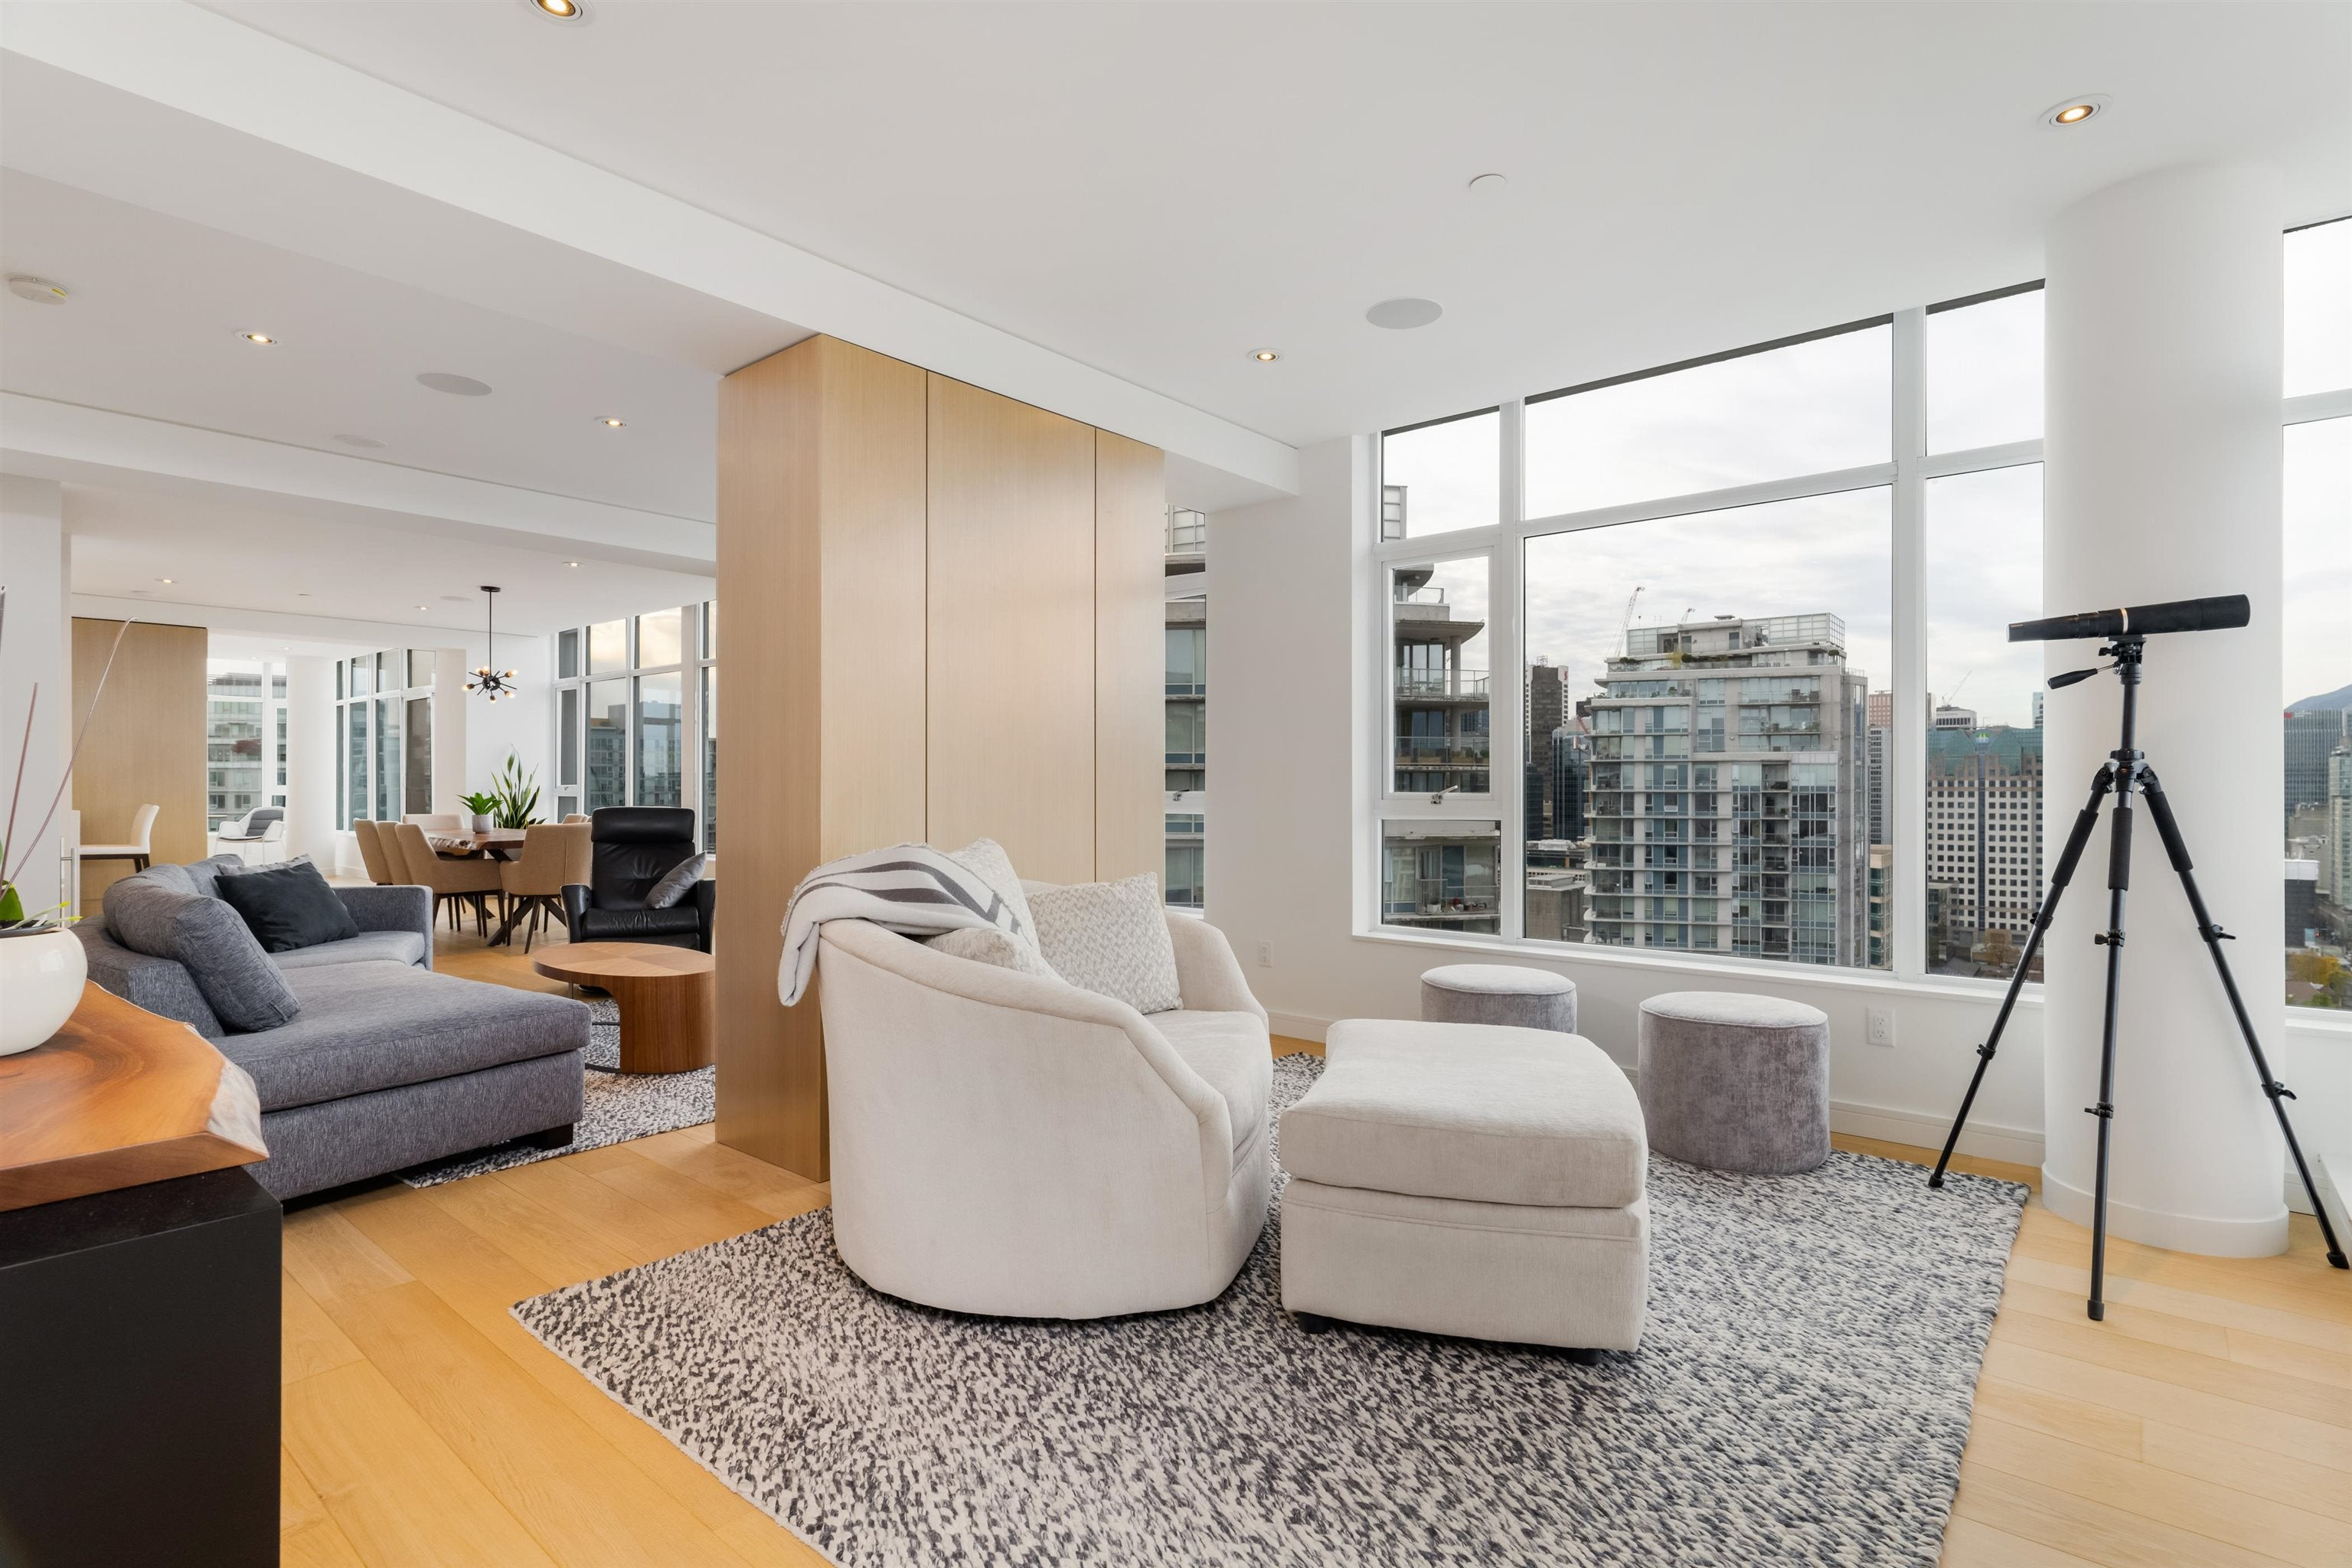 3603 688 ABBOTT STREET - Downtown VW Apartment/Condo for sale, 4 Bedrooms (R2627711) - #1